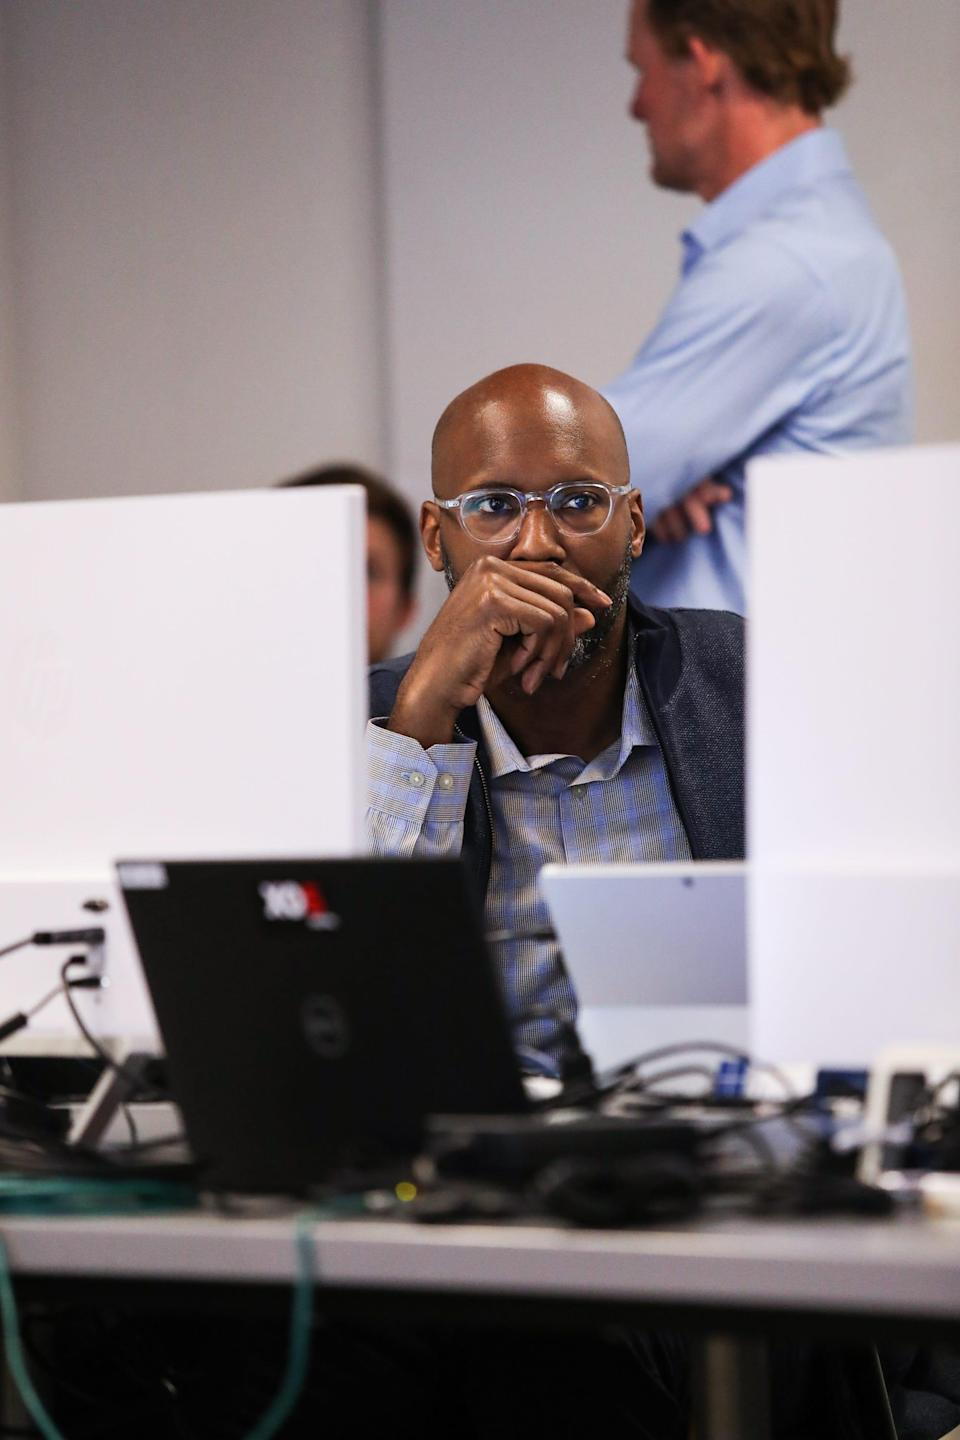 Brad Holmes ponders the draft board during Day 2 of the 2019 NFL draft in Agoura Hills, California, on Friday, April 26, 2019.